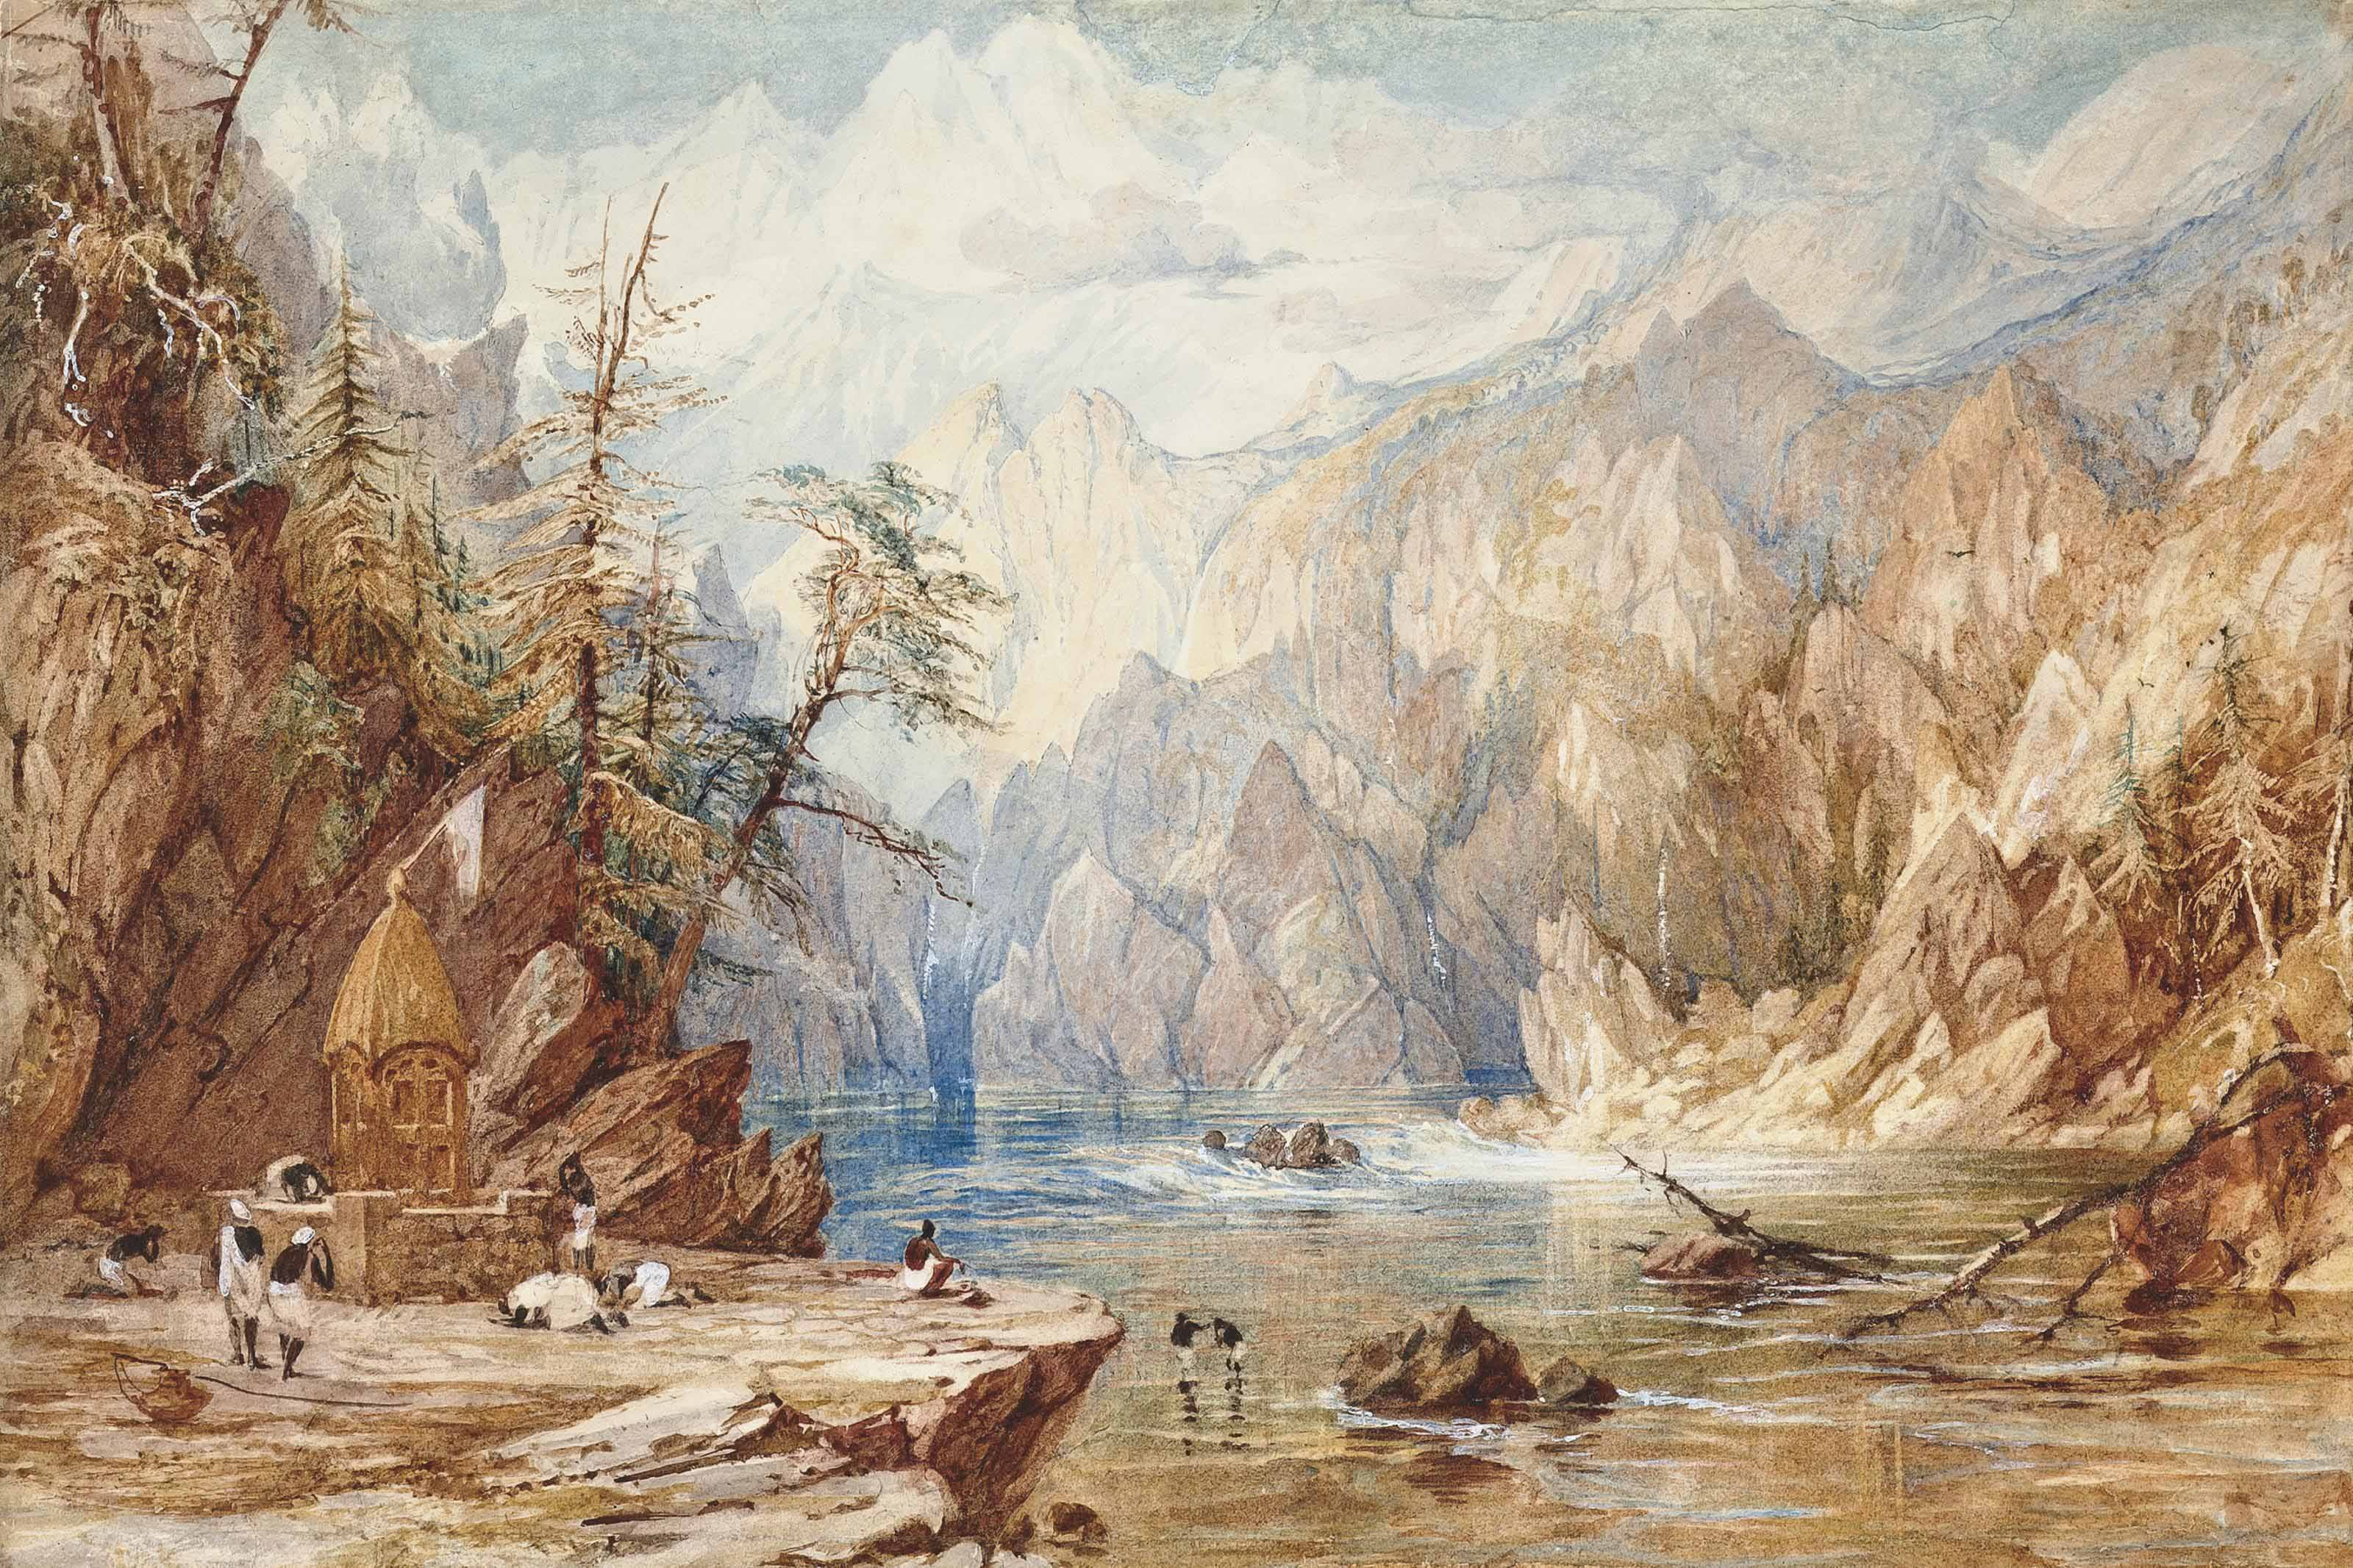 A mountainous landscape at the source of a river, with Indian figures by a shrine on its banks